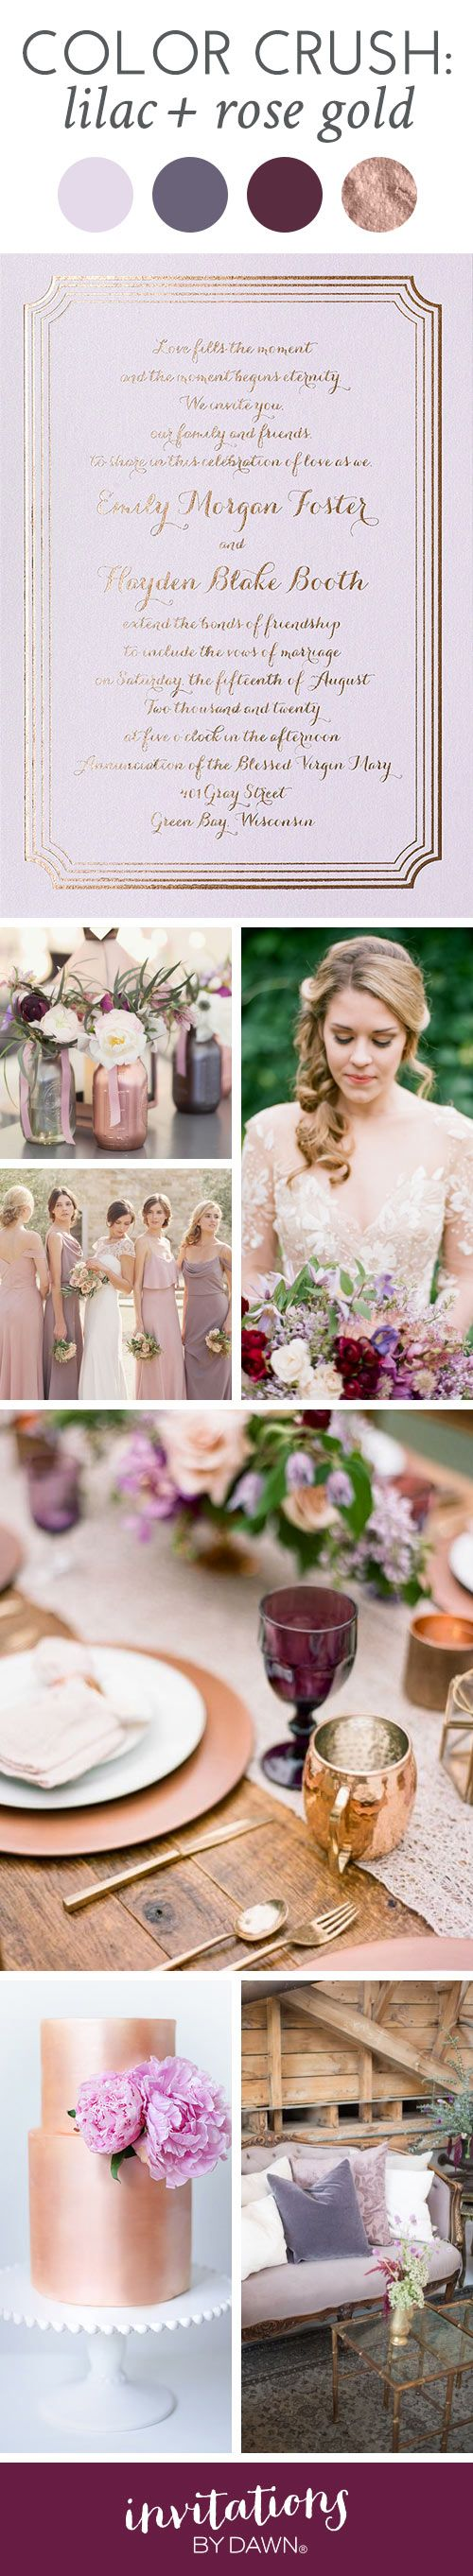 Lilac pairs so well with rose gold, it's absolutely striking! Take a look at the purple and lilac flowers in rose gold and purple shimmer canning jars. We caught ourselves drooling over the rose gold wedding cake with lilac flowers. Shades of purple and especially lilac coordinate with rose gold beautifully while contrasting brilliantly.